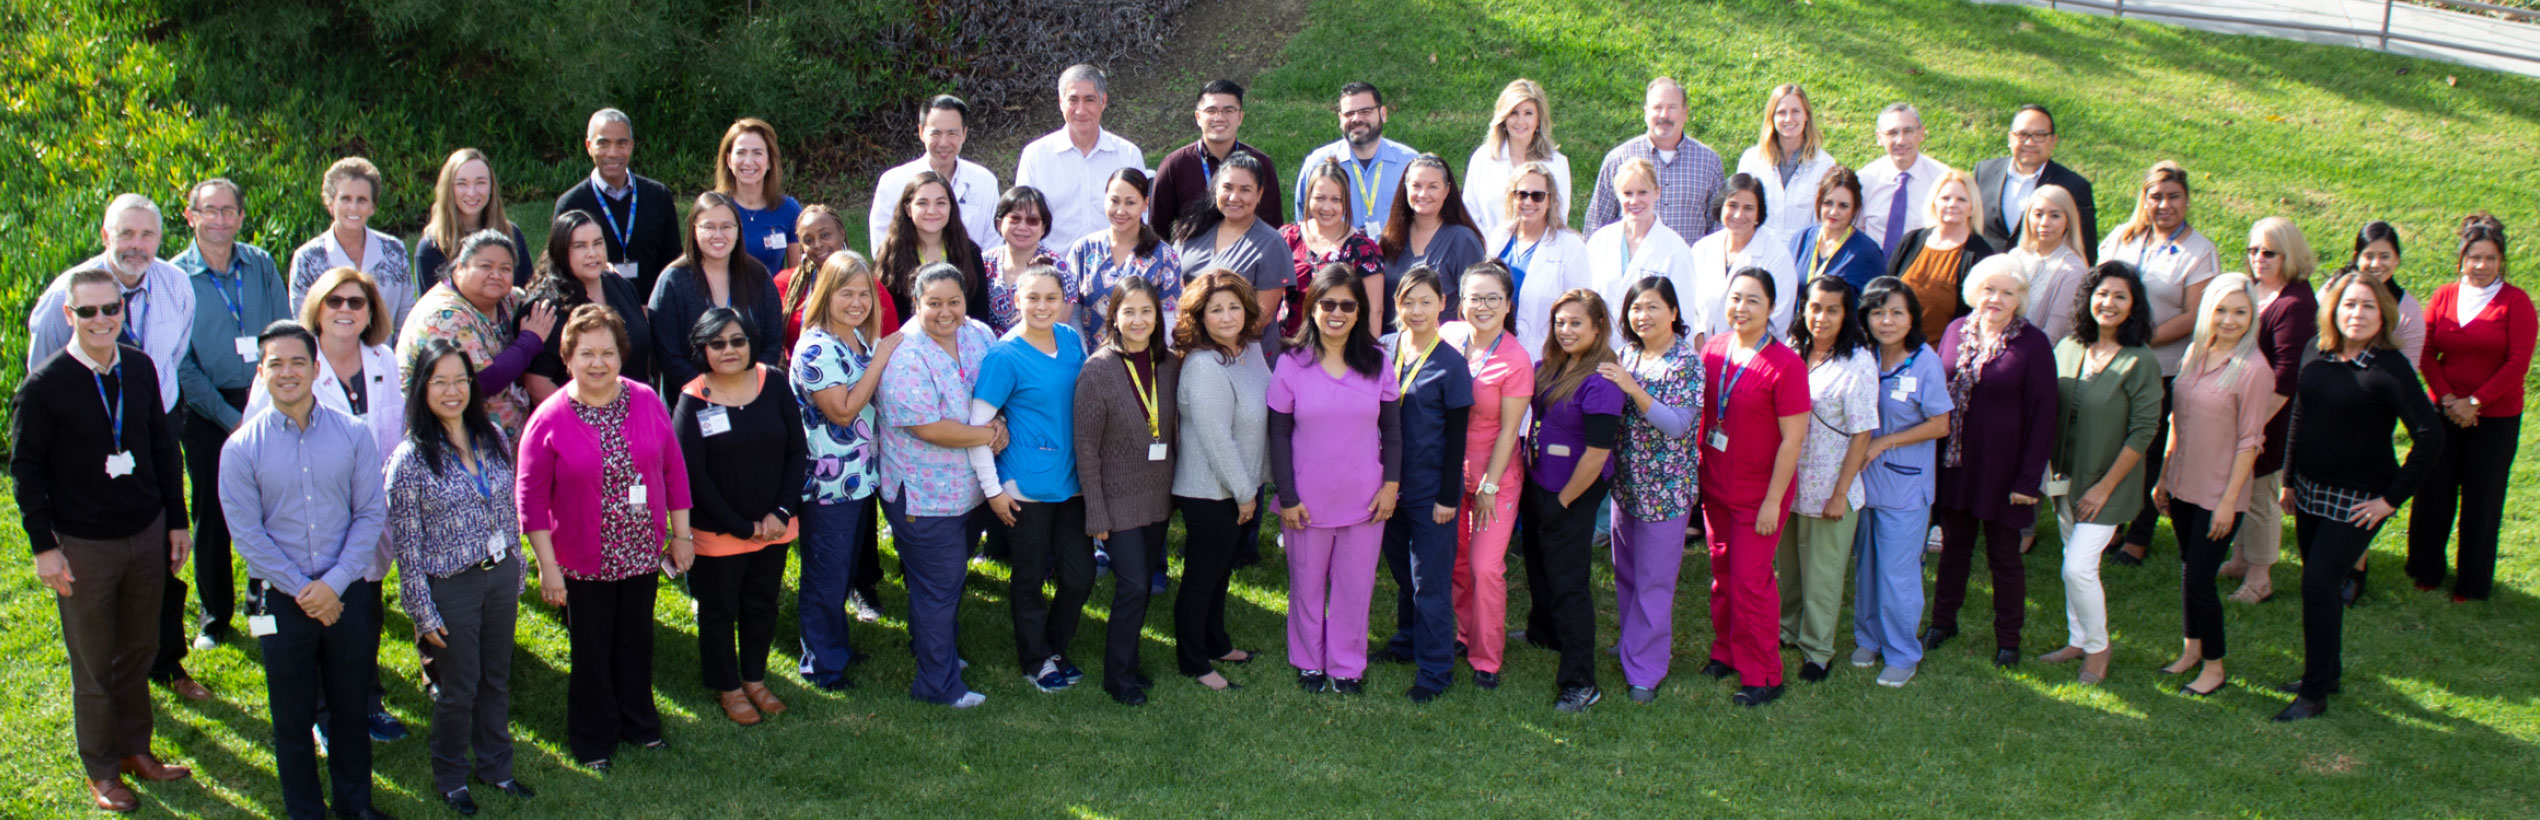 UC Irvine Student Health Center group photo